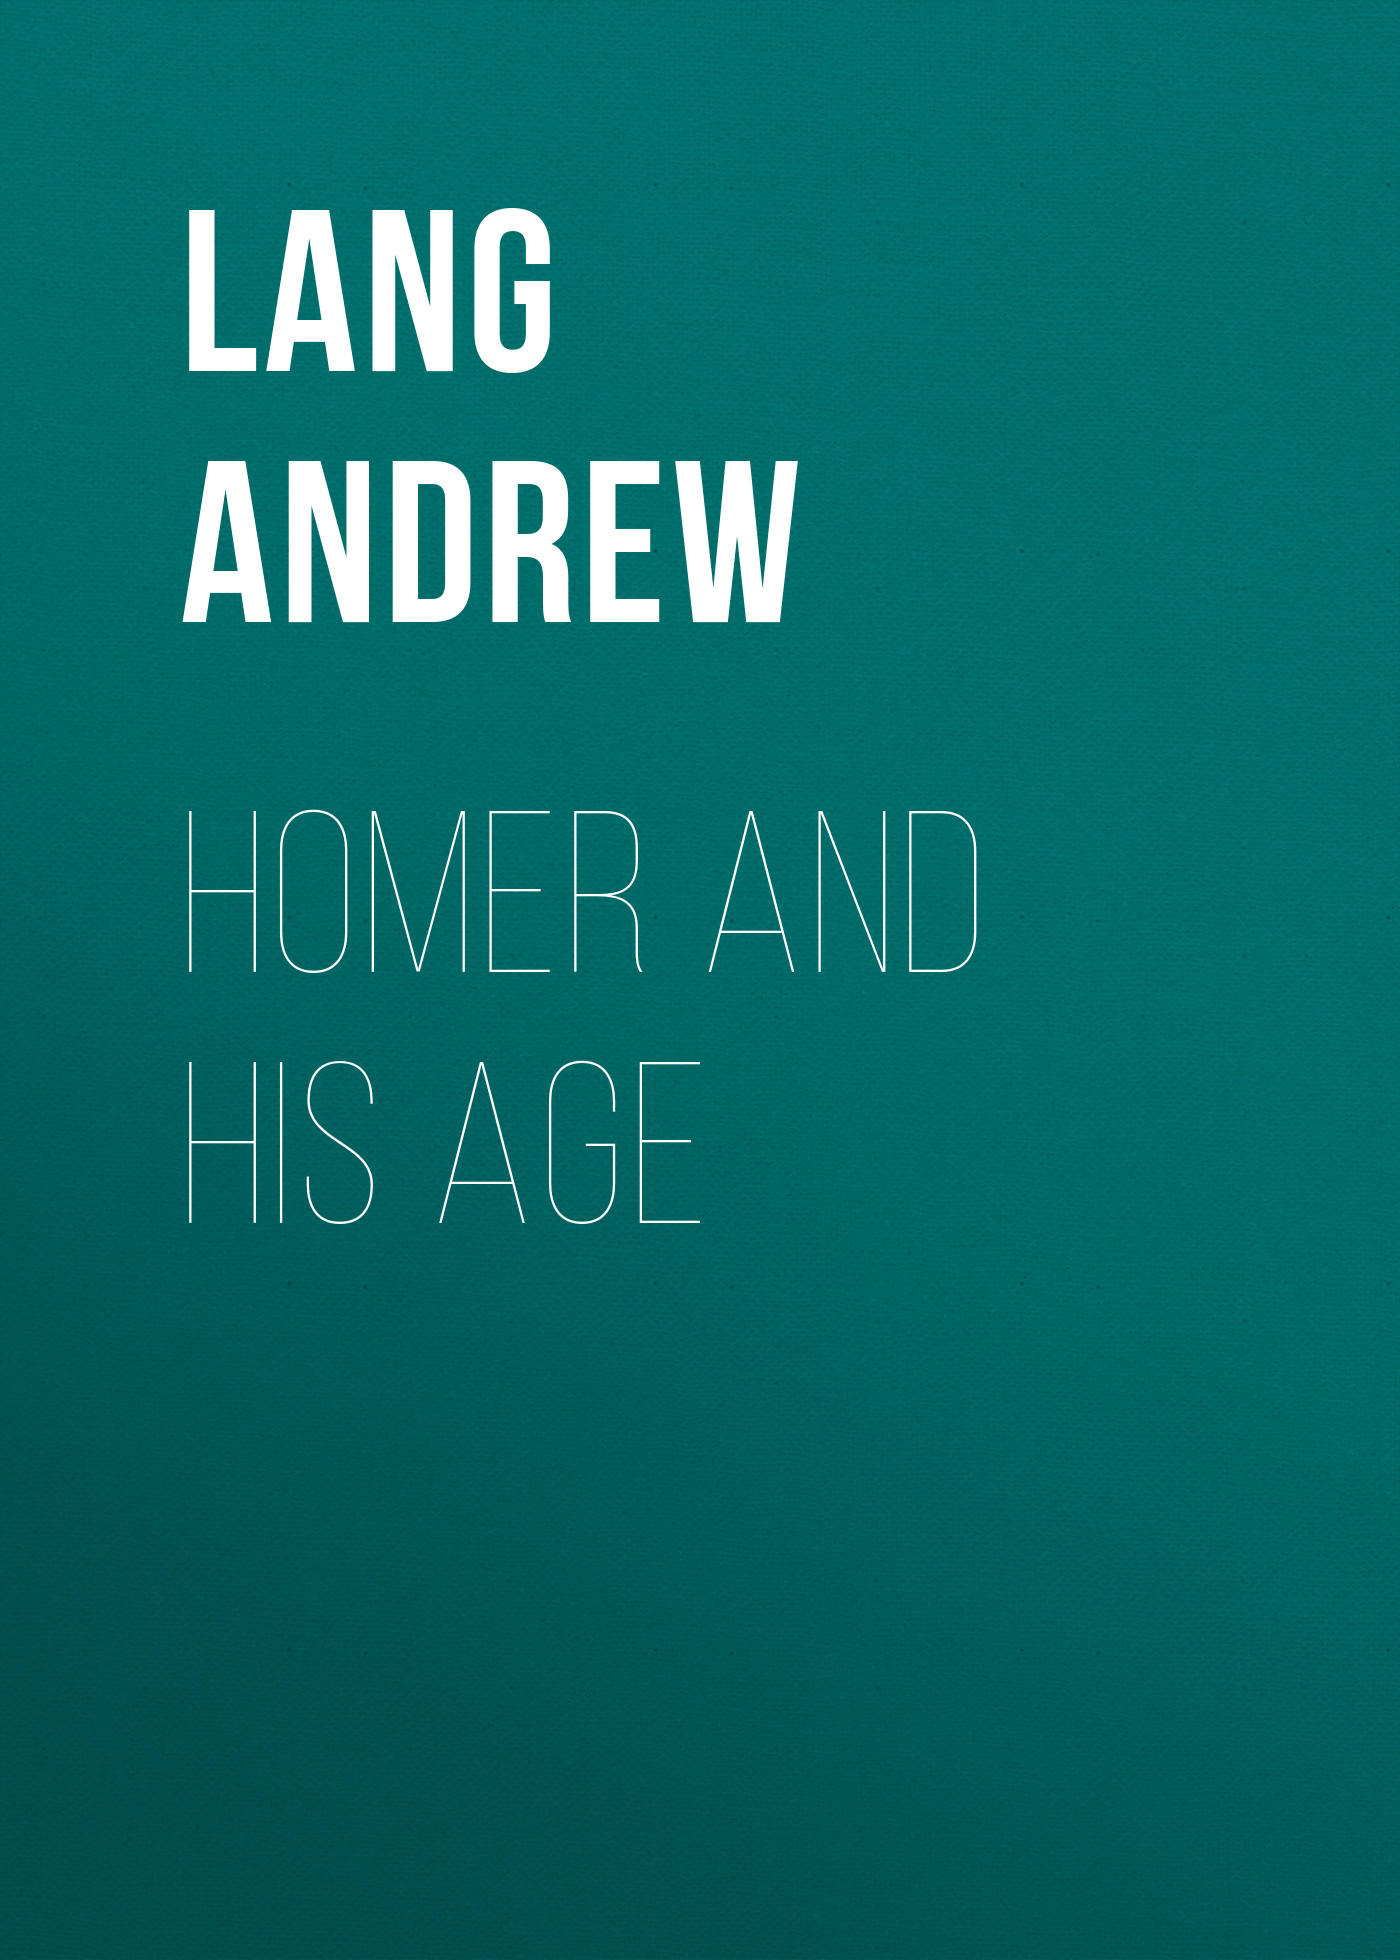 цена Lang Andrew Homer and His Age